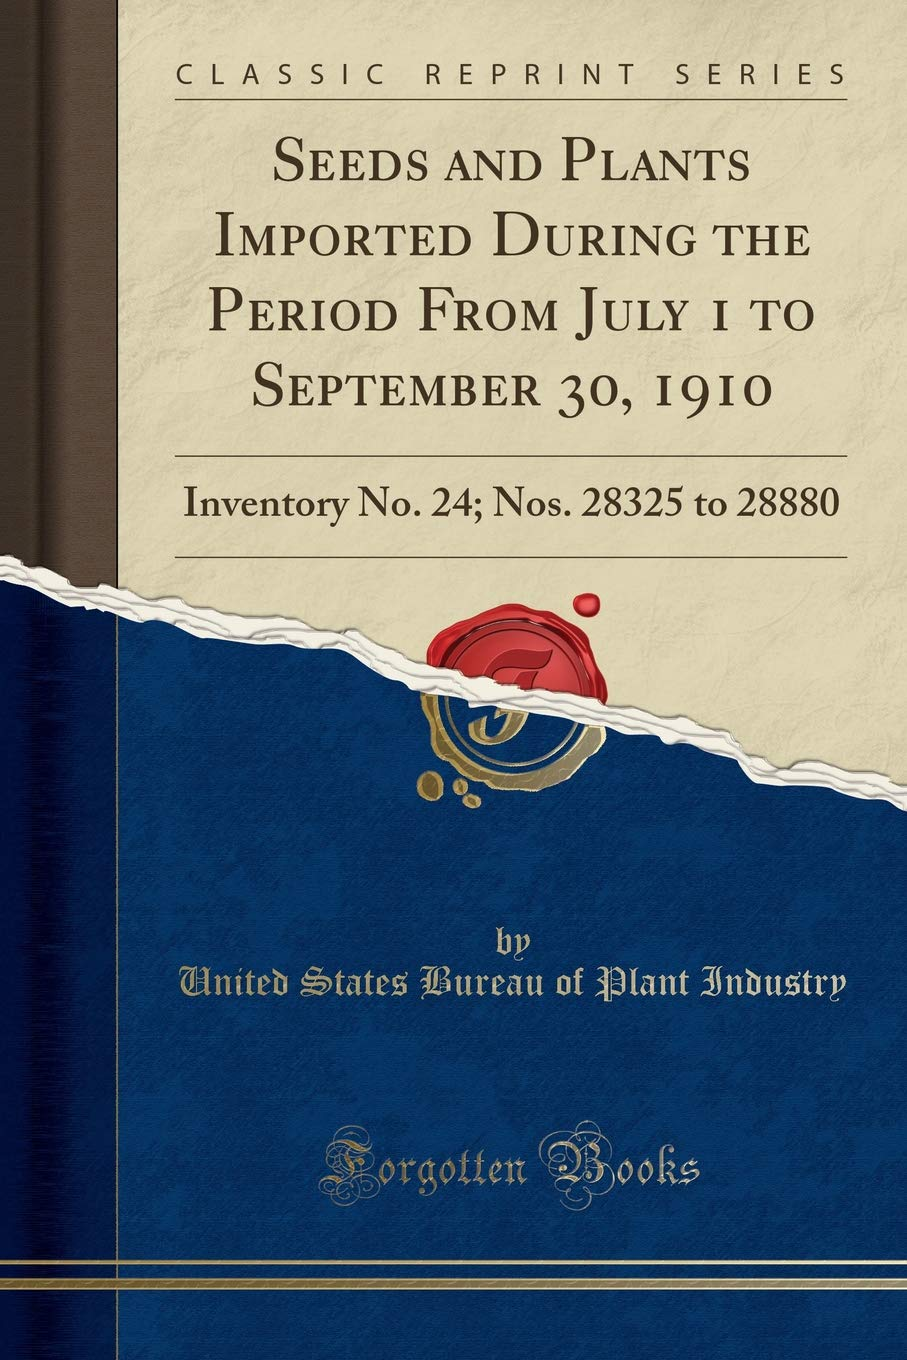 Read Online Seeds and Plants Imported During the Period From July 1 to September 30, 1910: Inventory No. 24; Nos. 28325 to 28880 (Classic Reprint) pdf